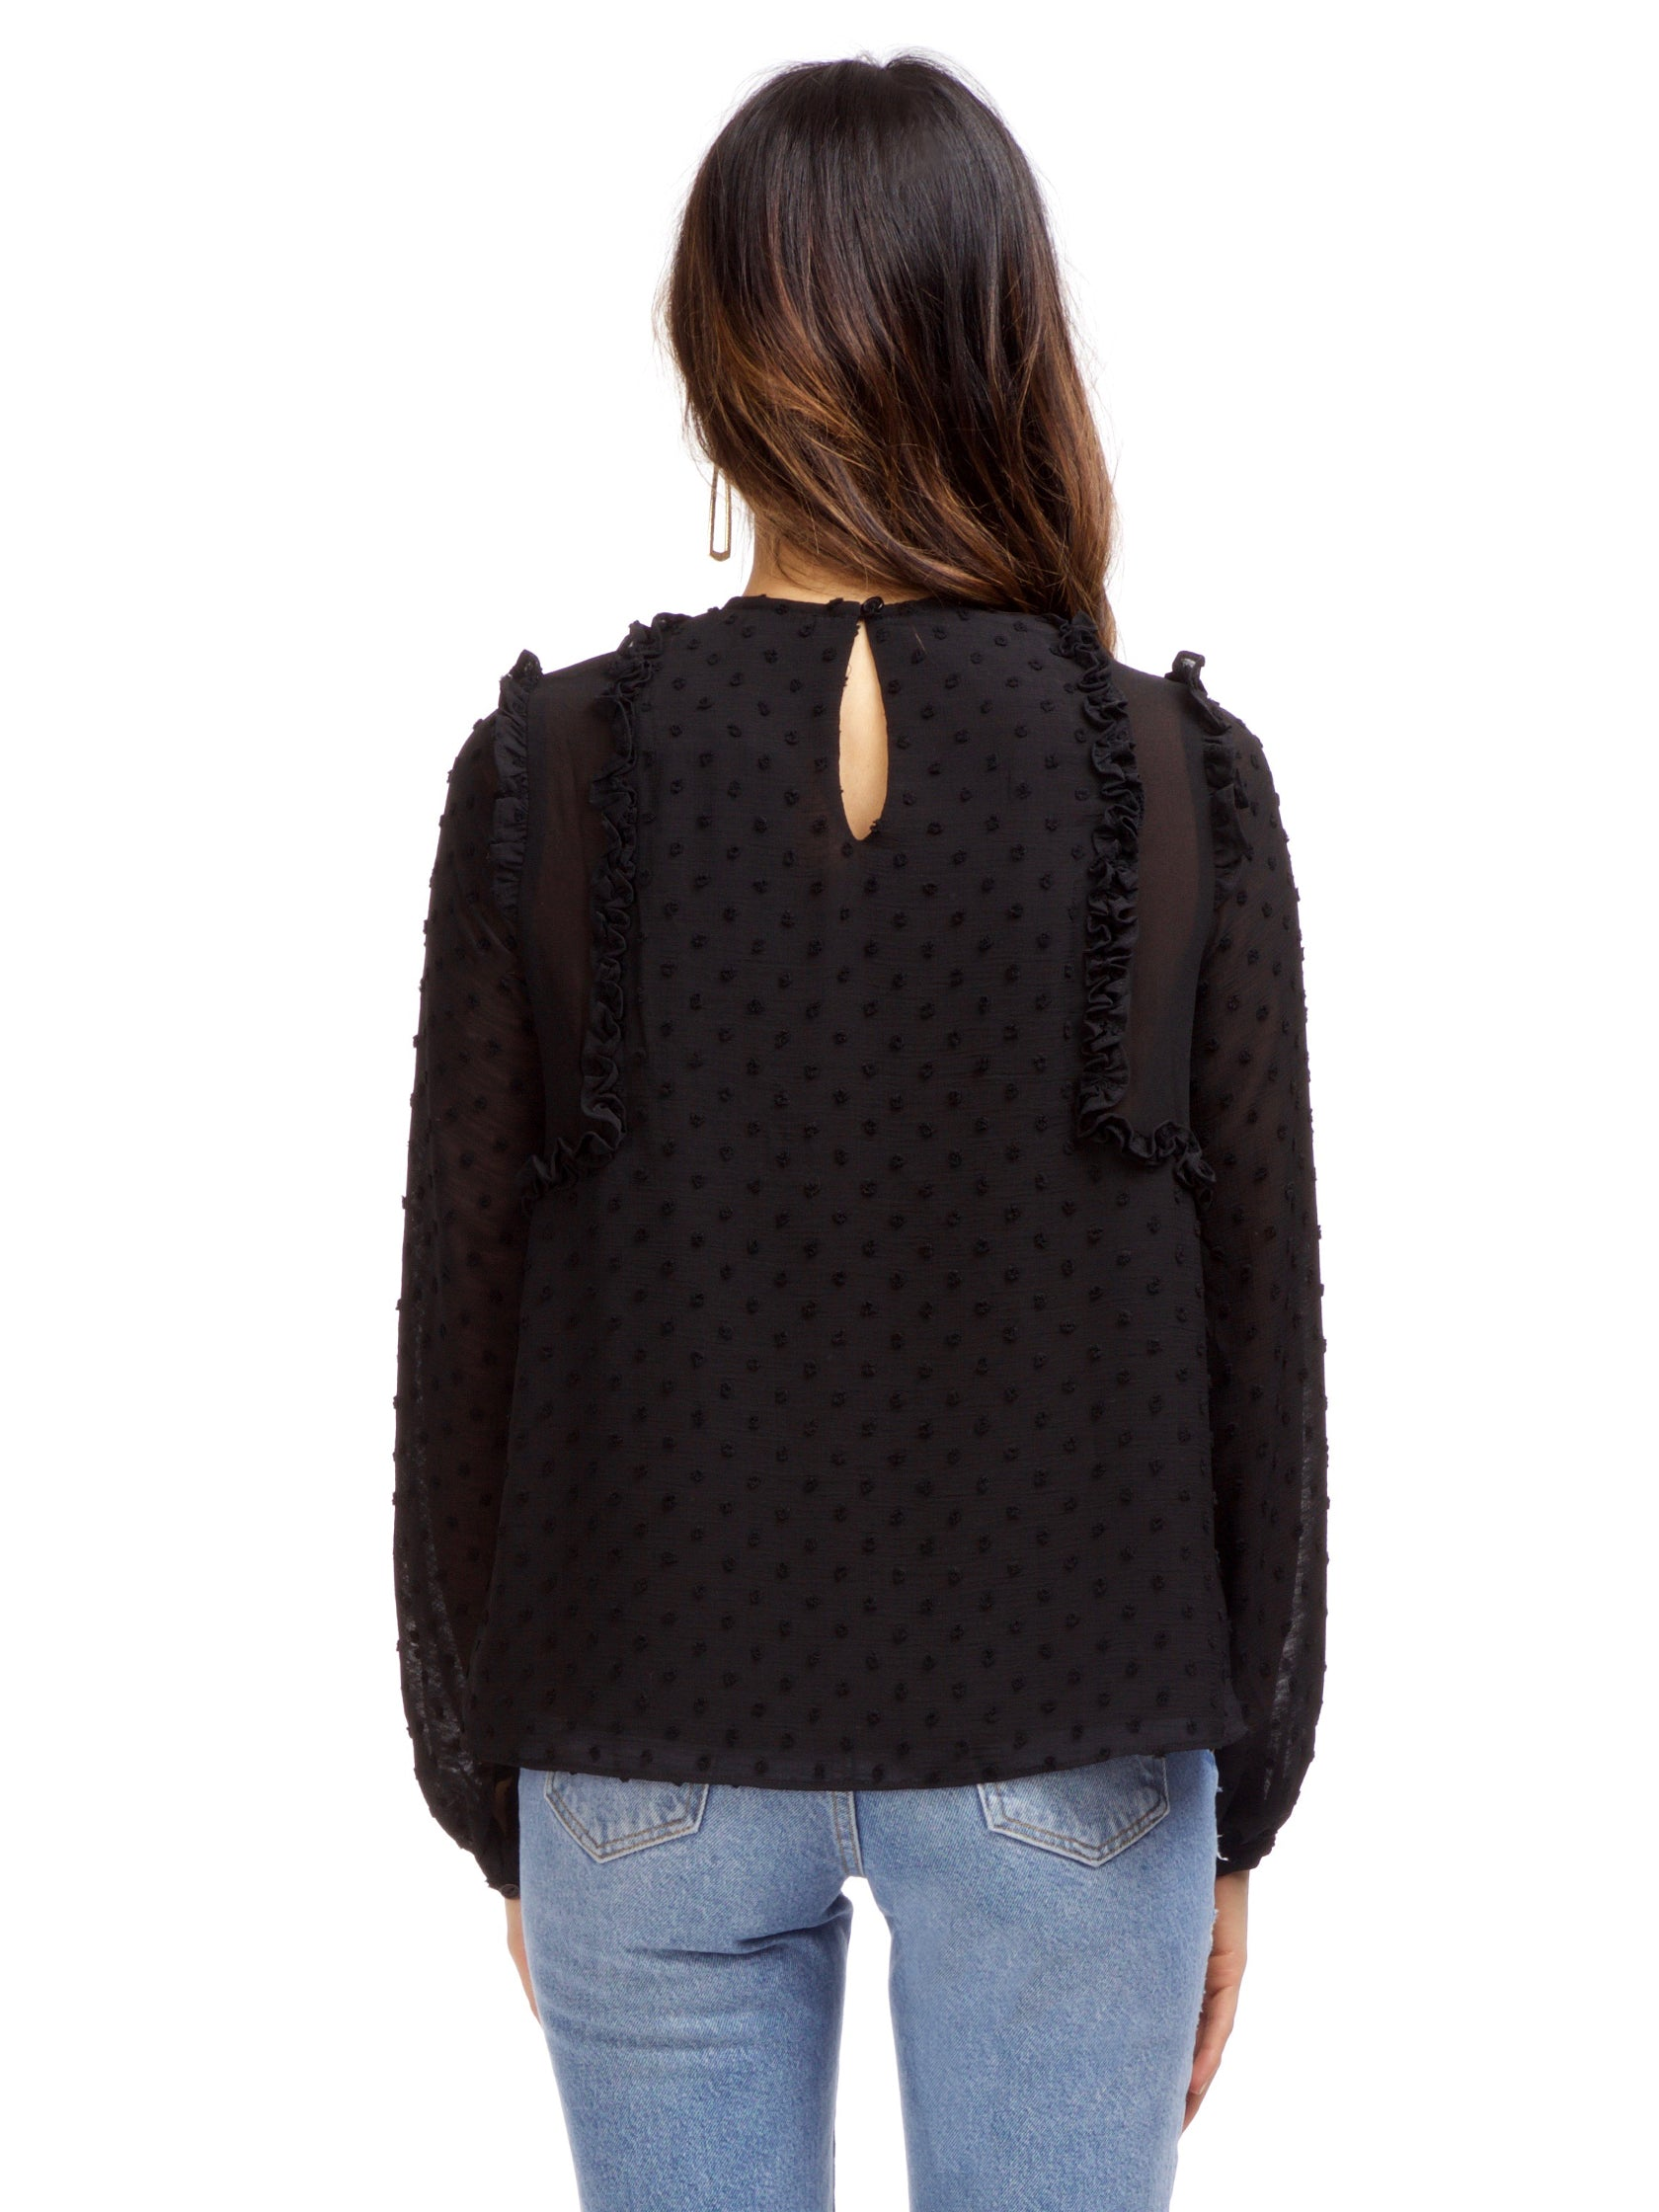 Women outfit in a top rental from Strut & Bolt called Dotted Ruffle Long Sleeve Top